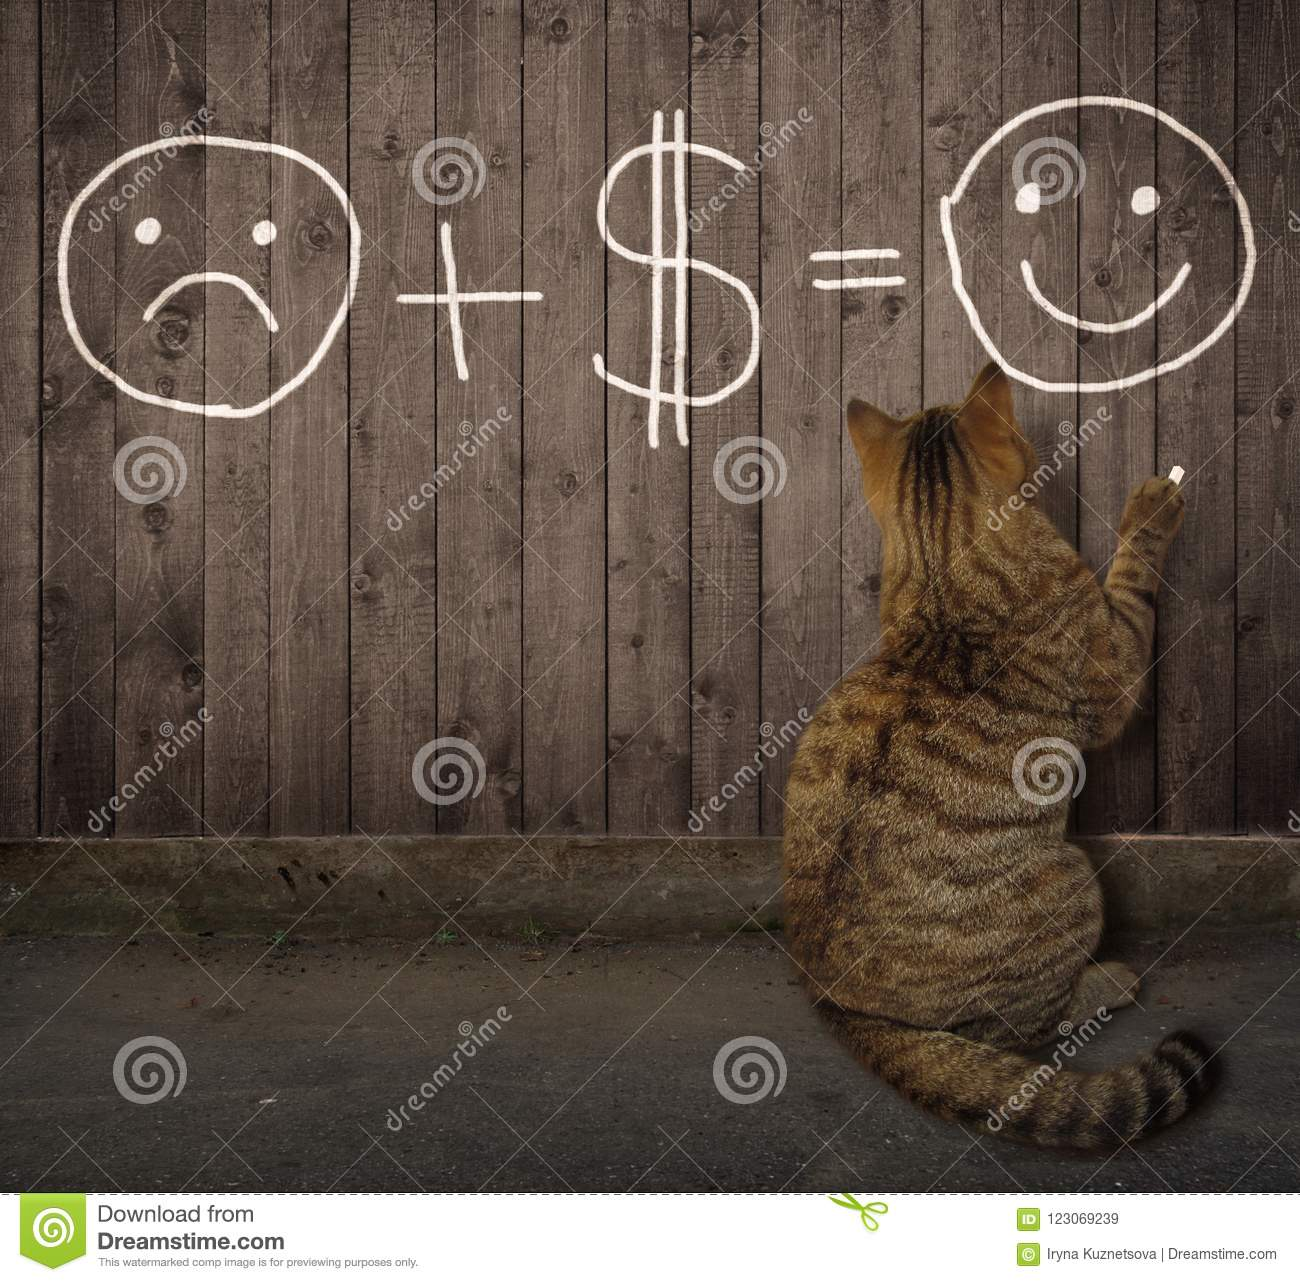 Cat writes a funny math equation on a fence